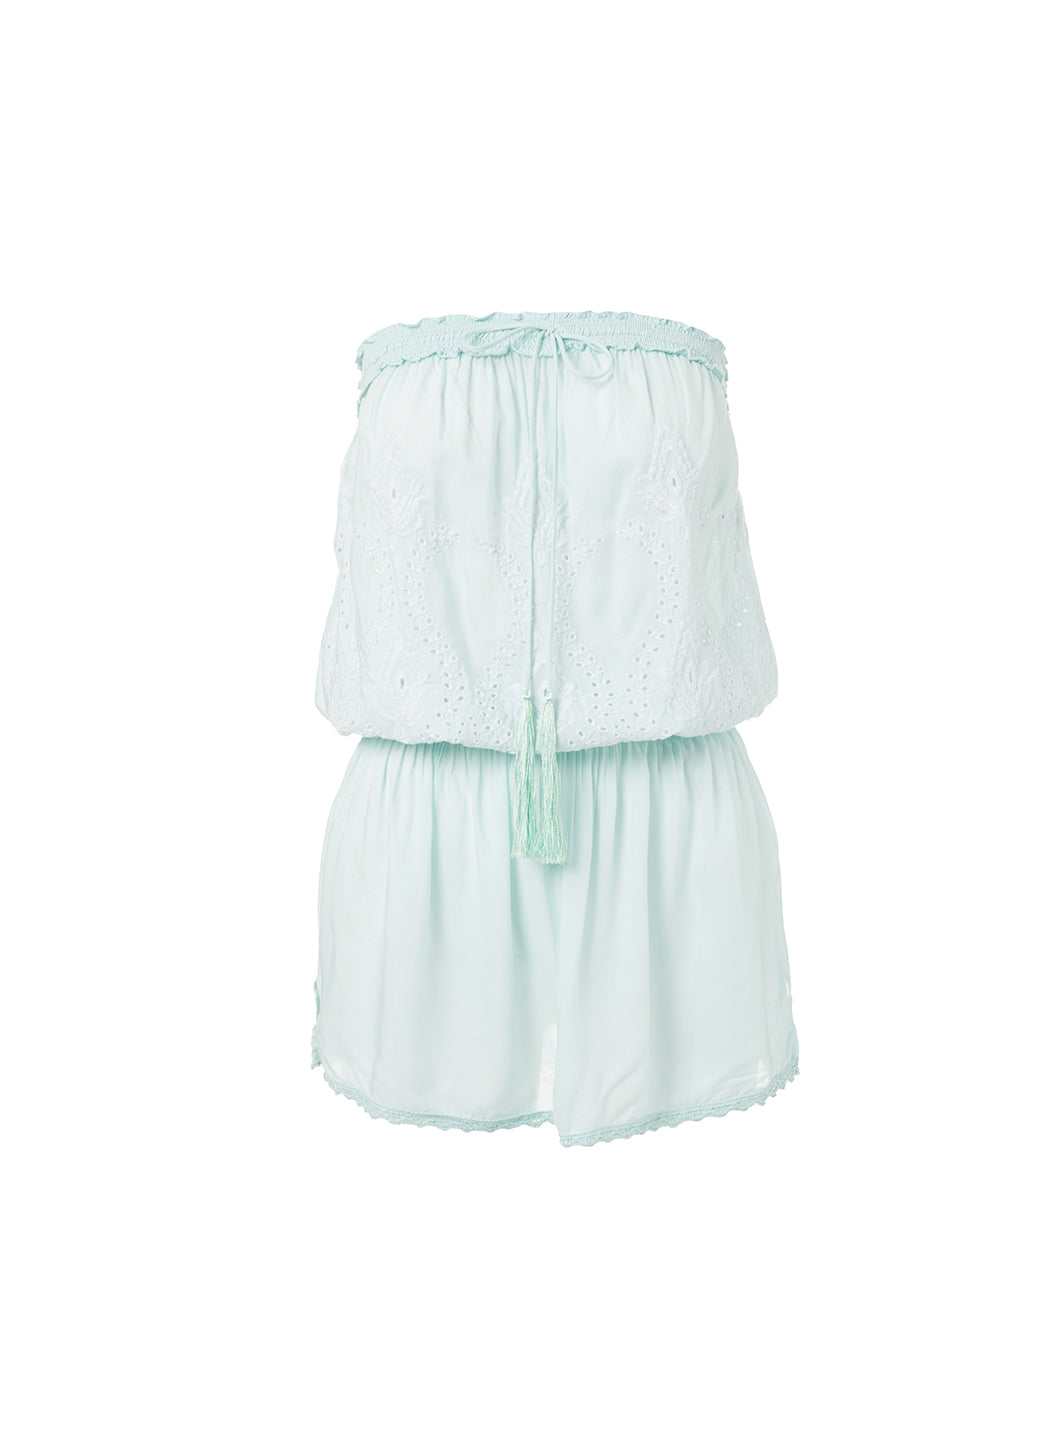 Fruley Mint Bandeau Embroidered Short Beach Dress - Melissa Odabash Beachwear